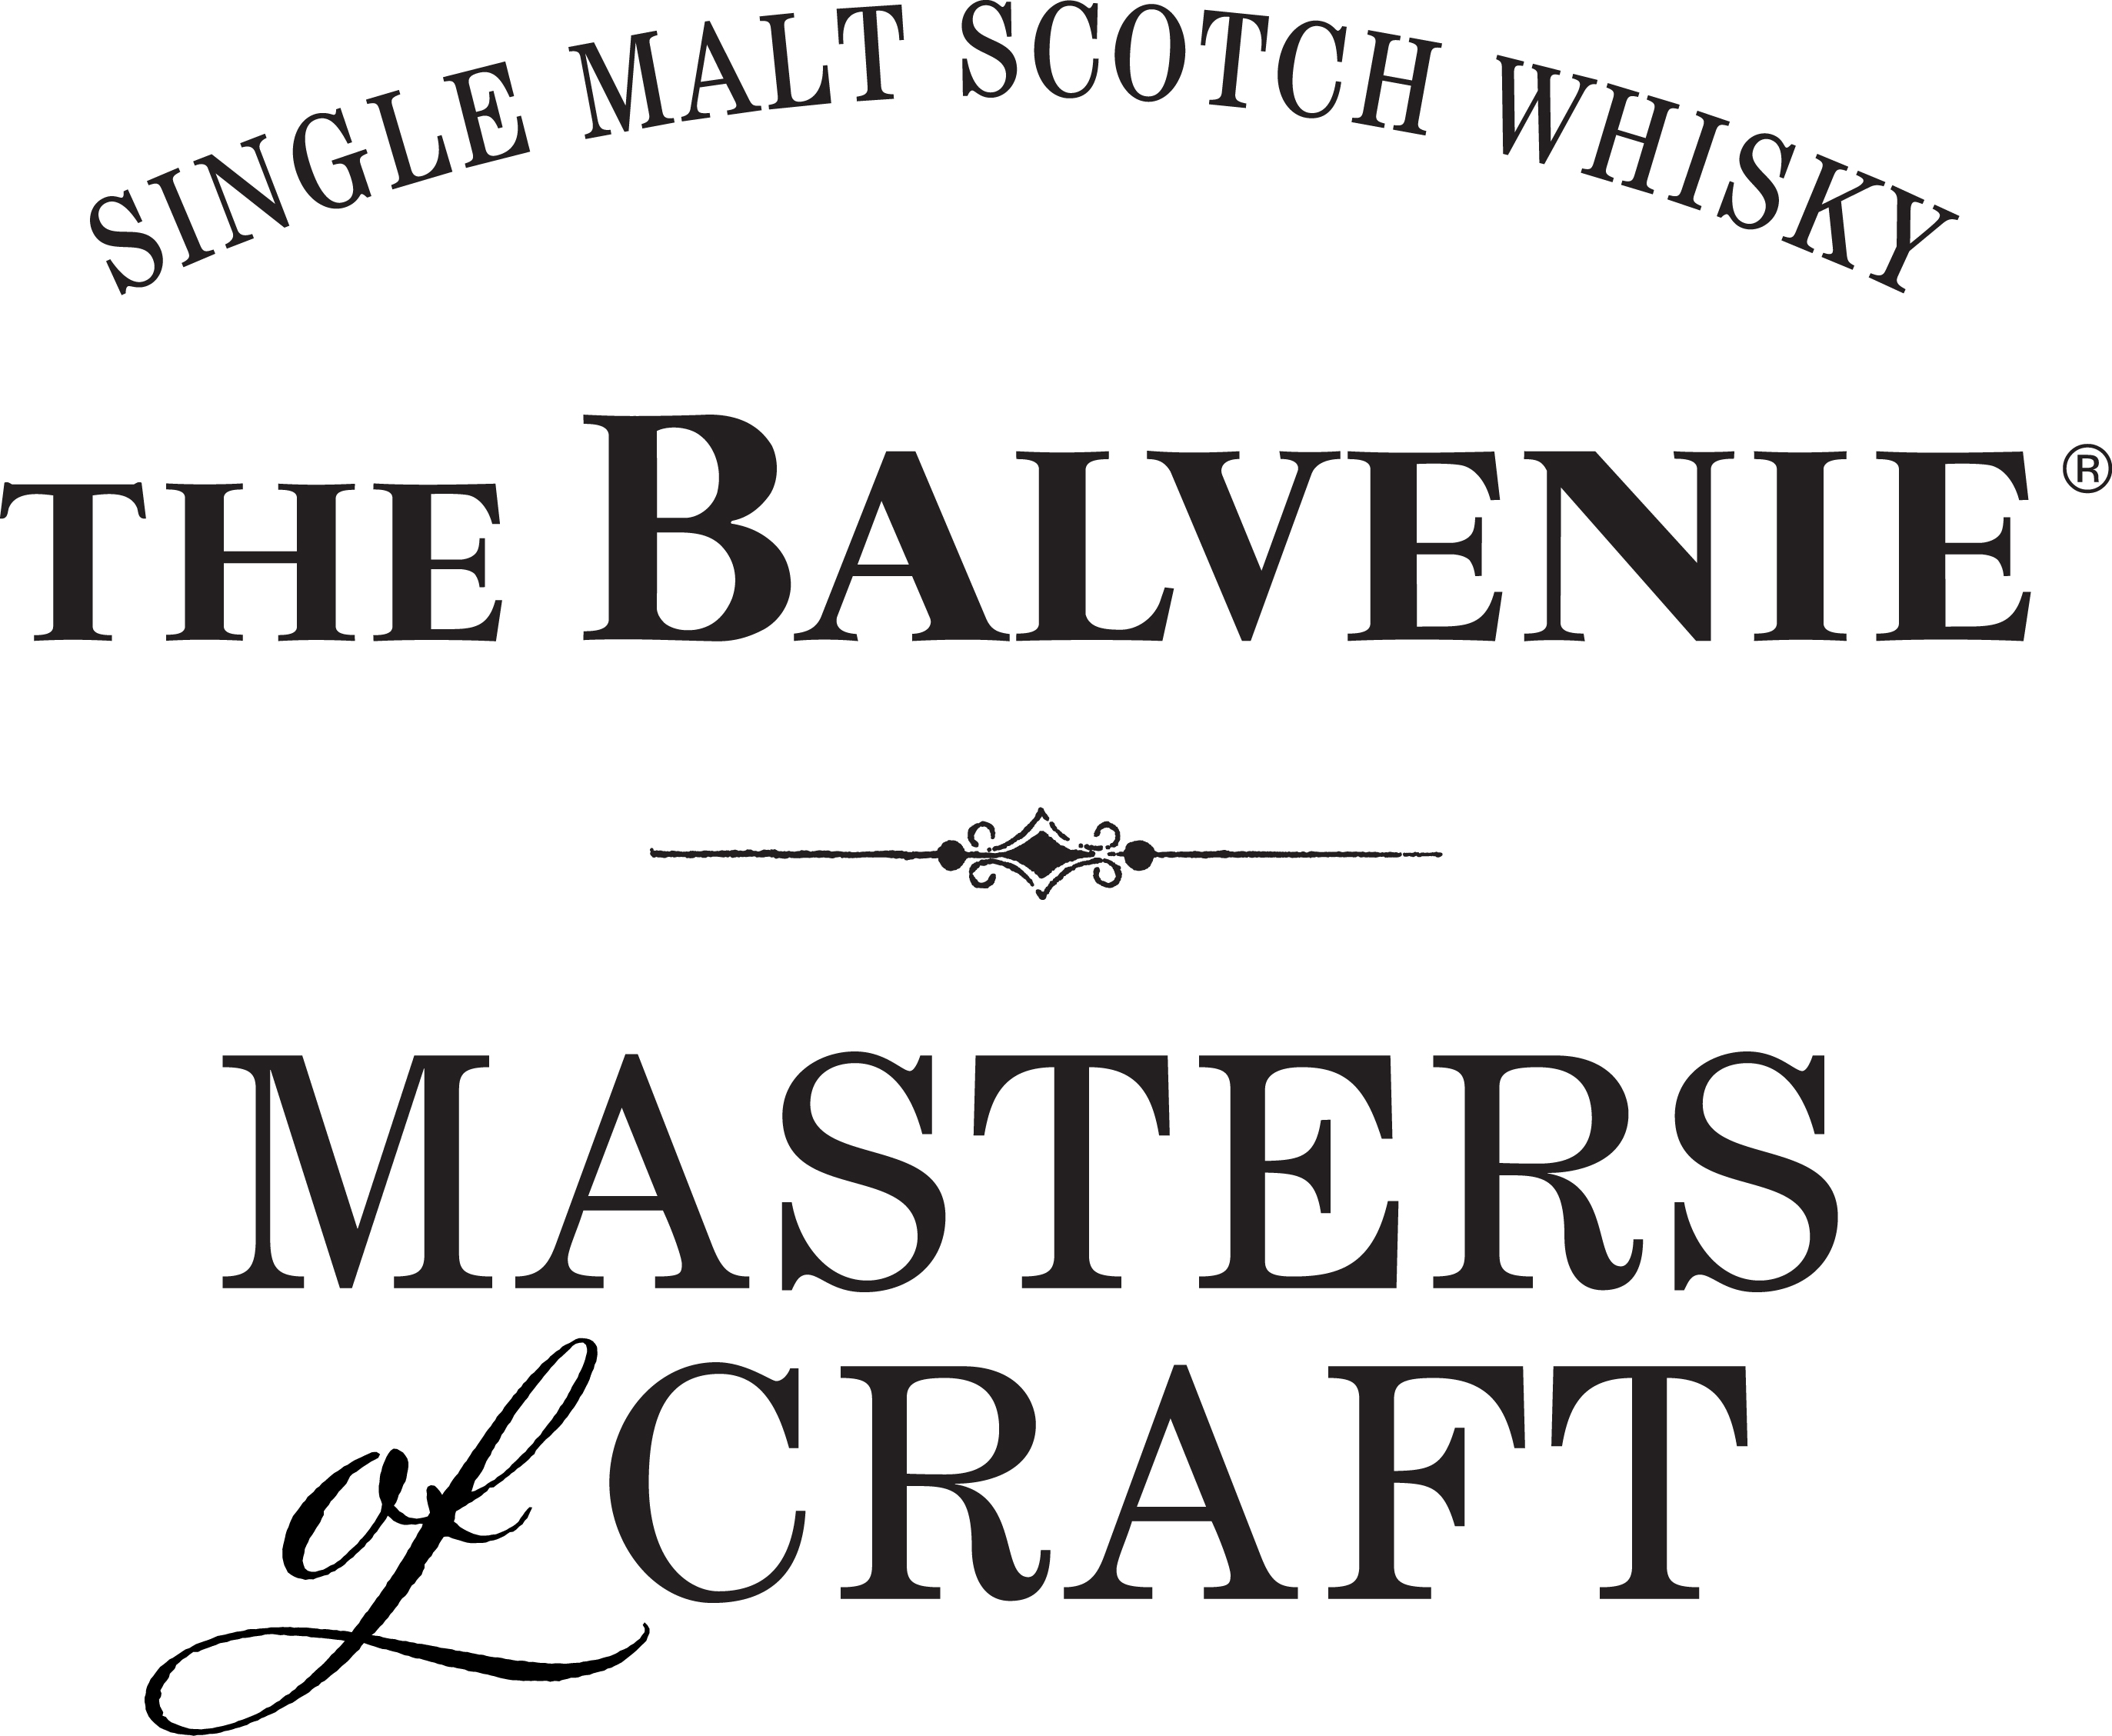 The Cooper Presents a Scotch and Cigar Dinner 7/23